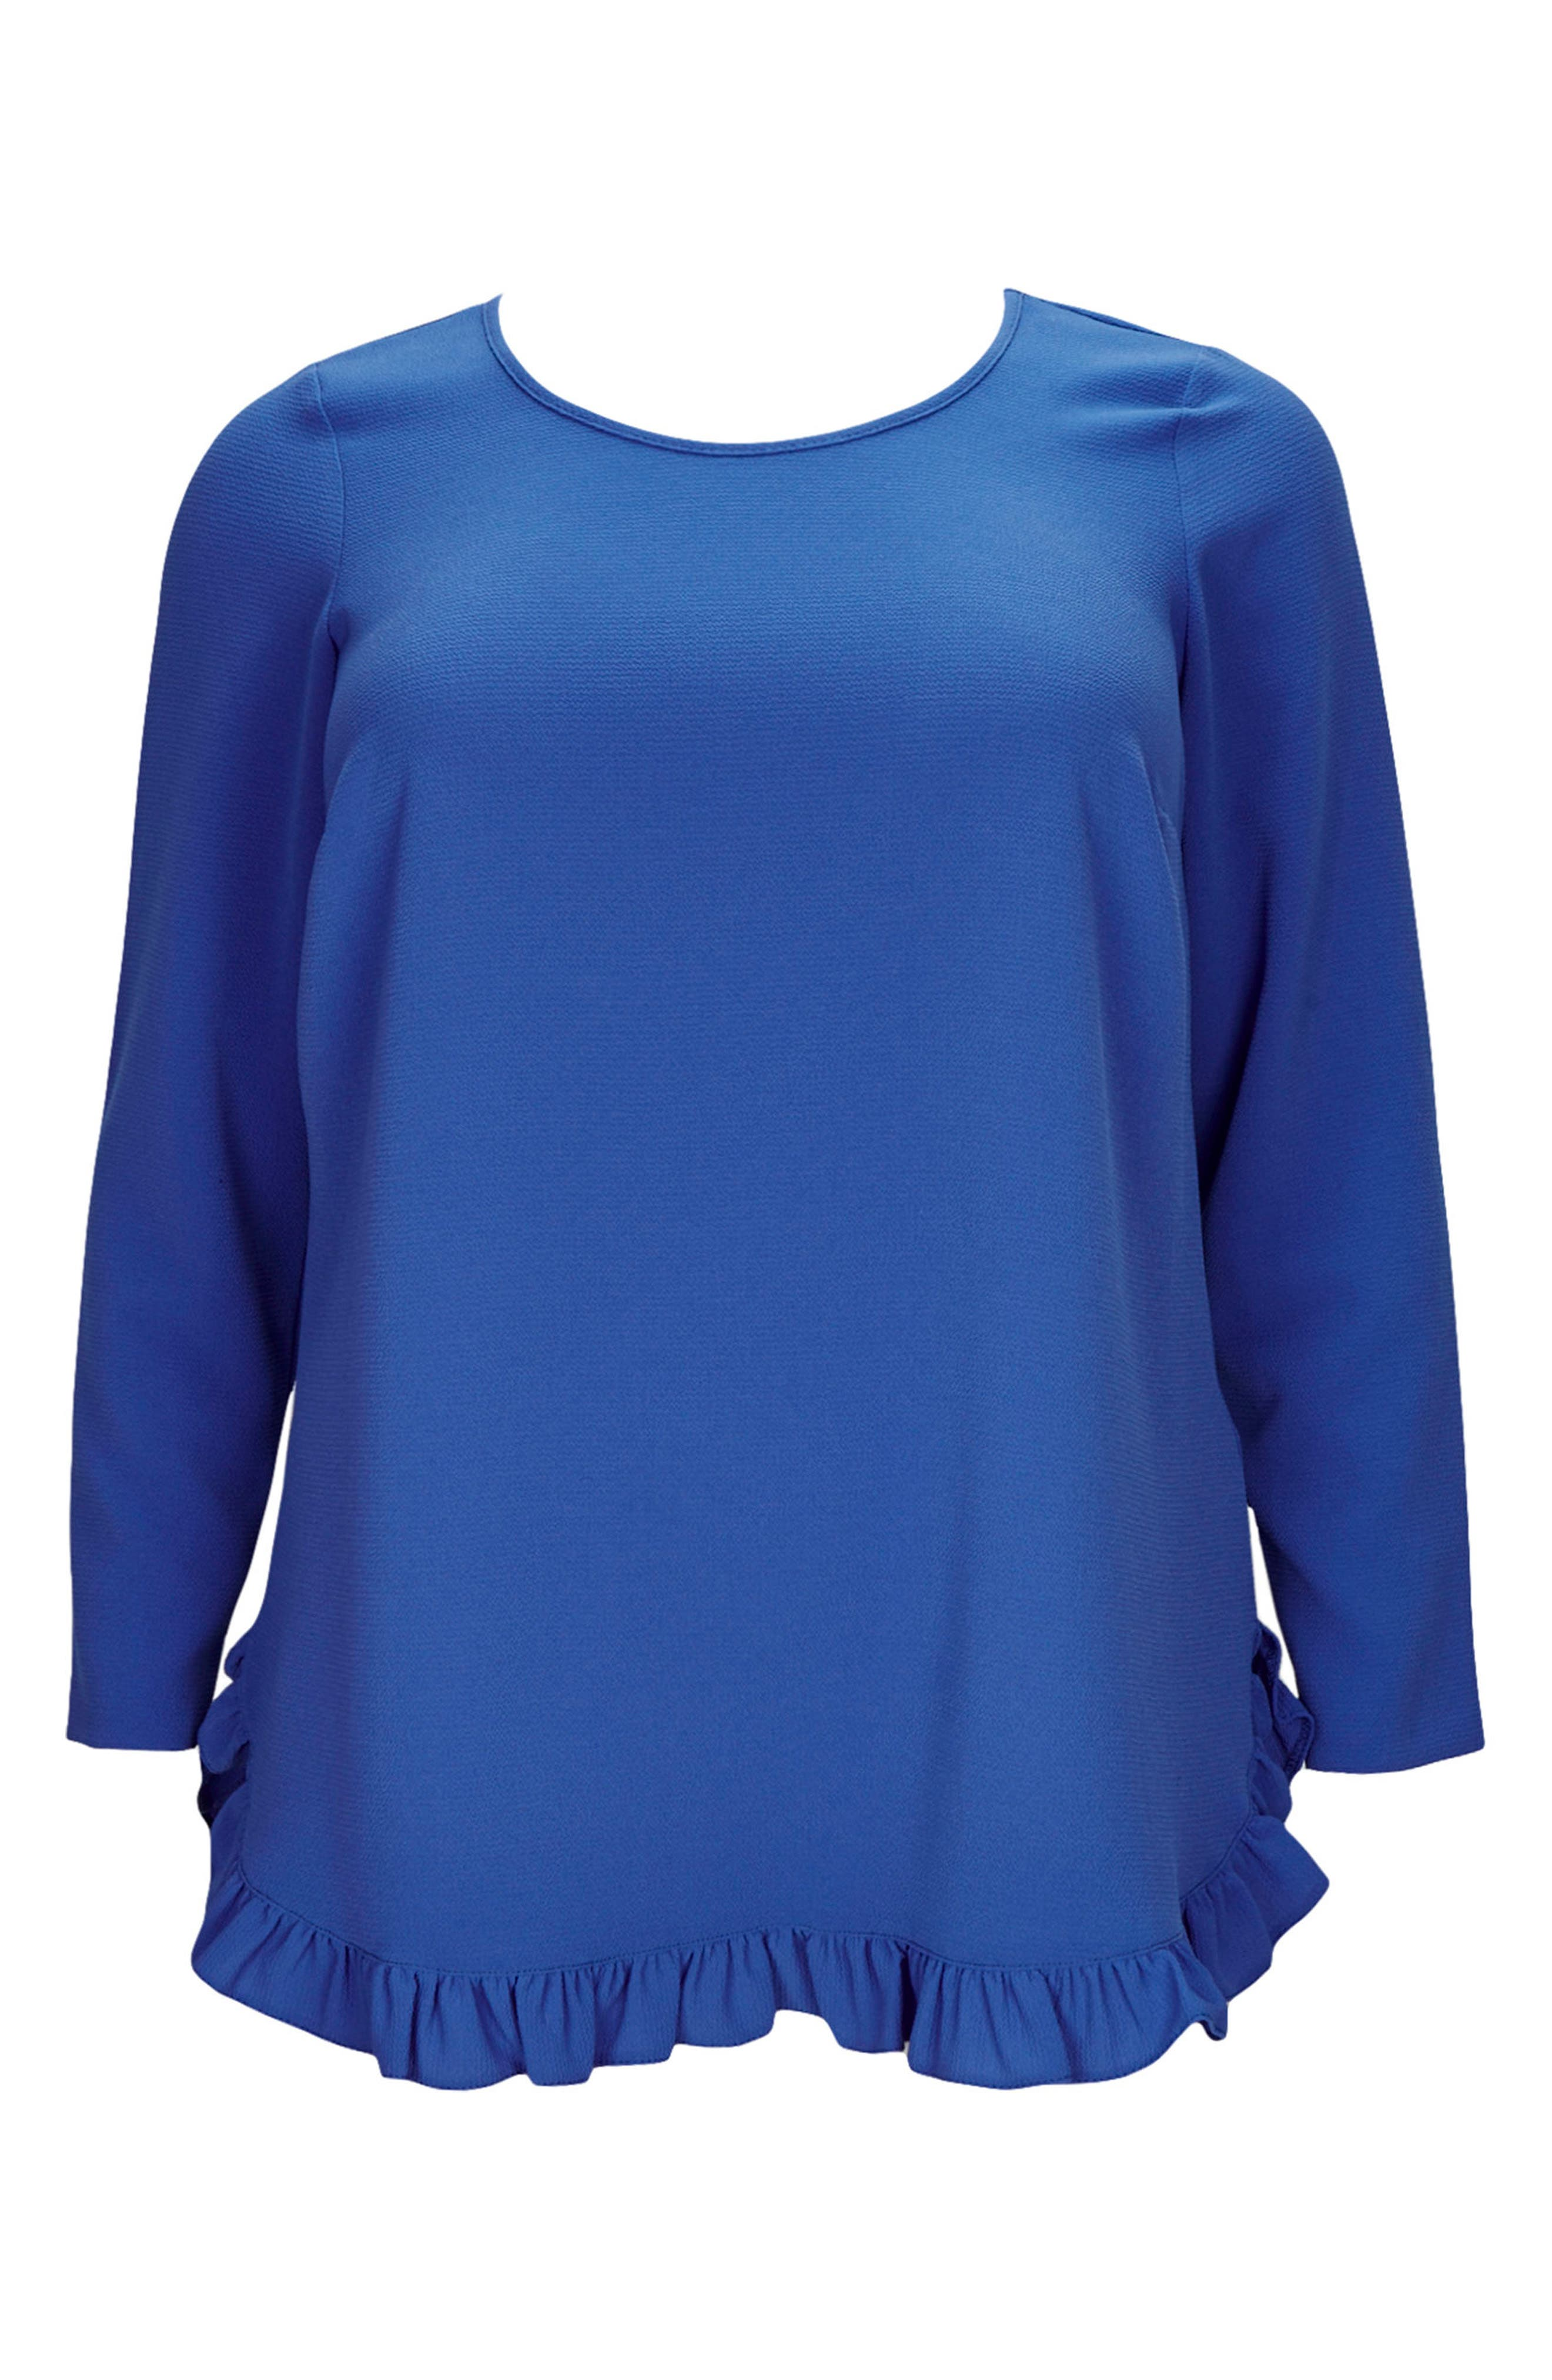 Ruffle Hem Top,                             Alternate thumbnail 3, color,                             400